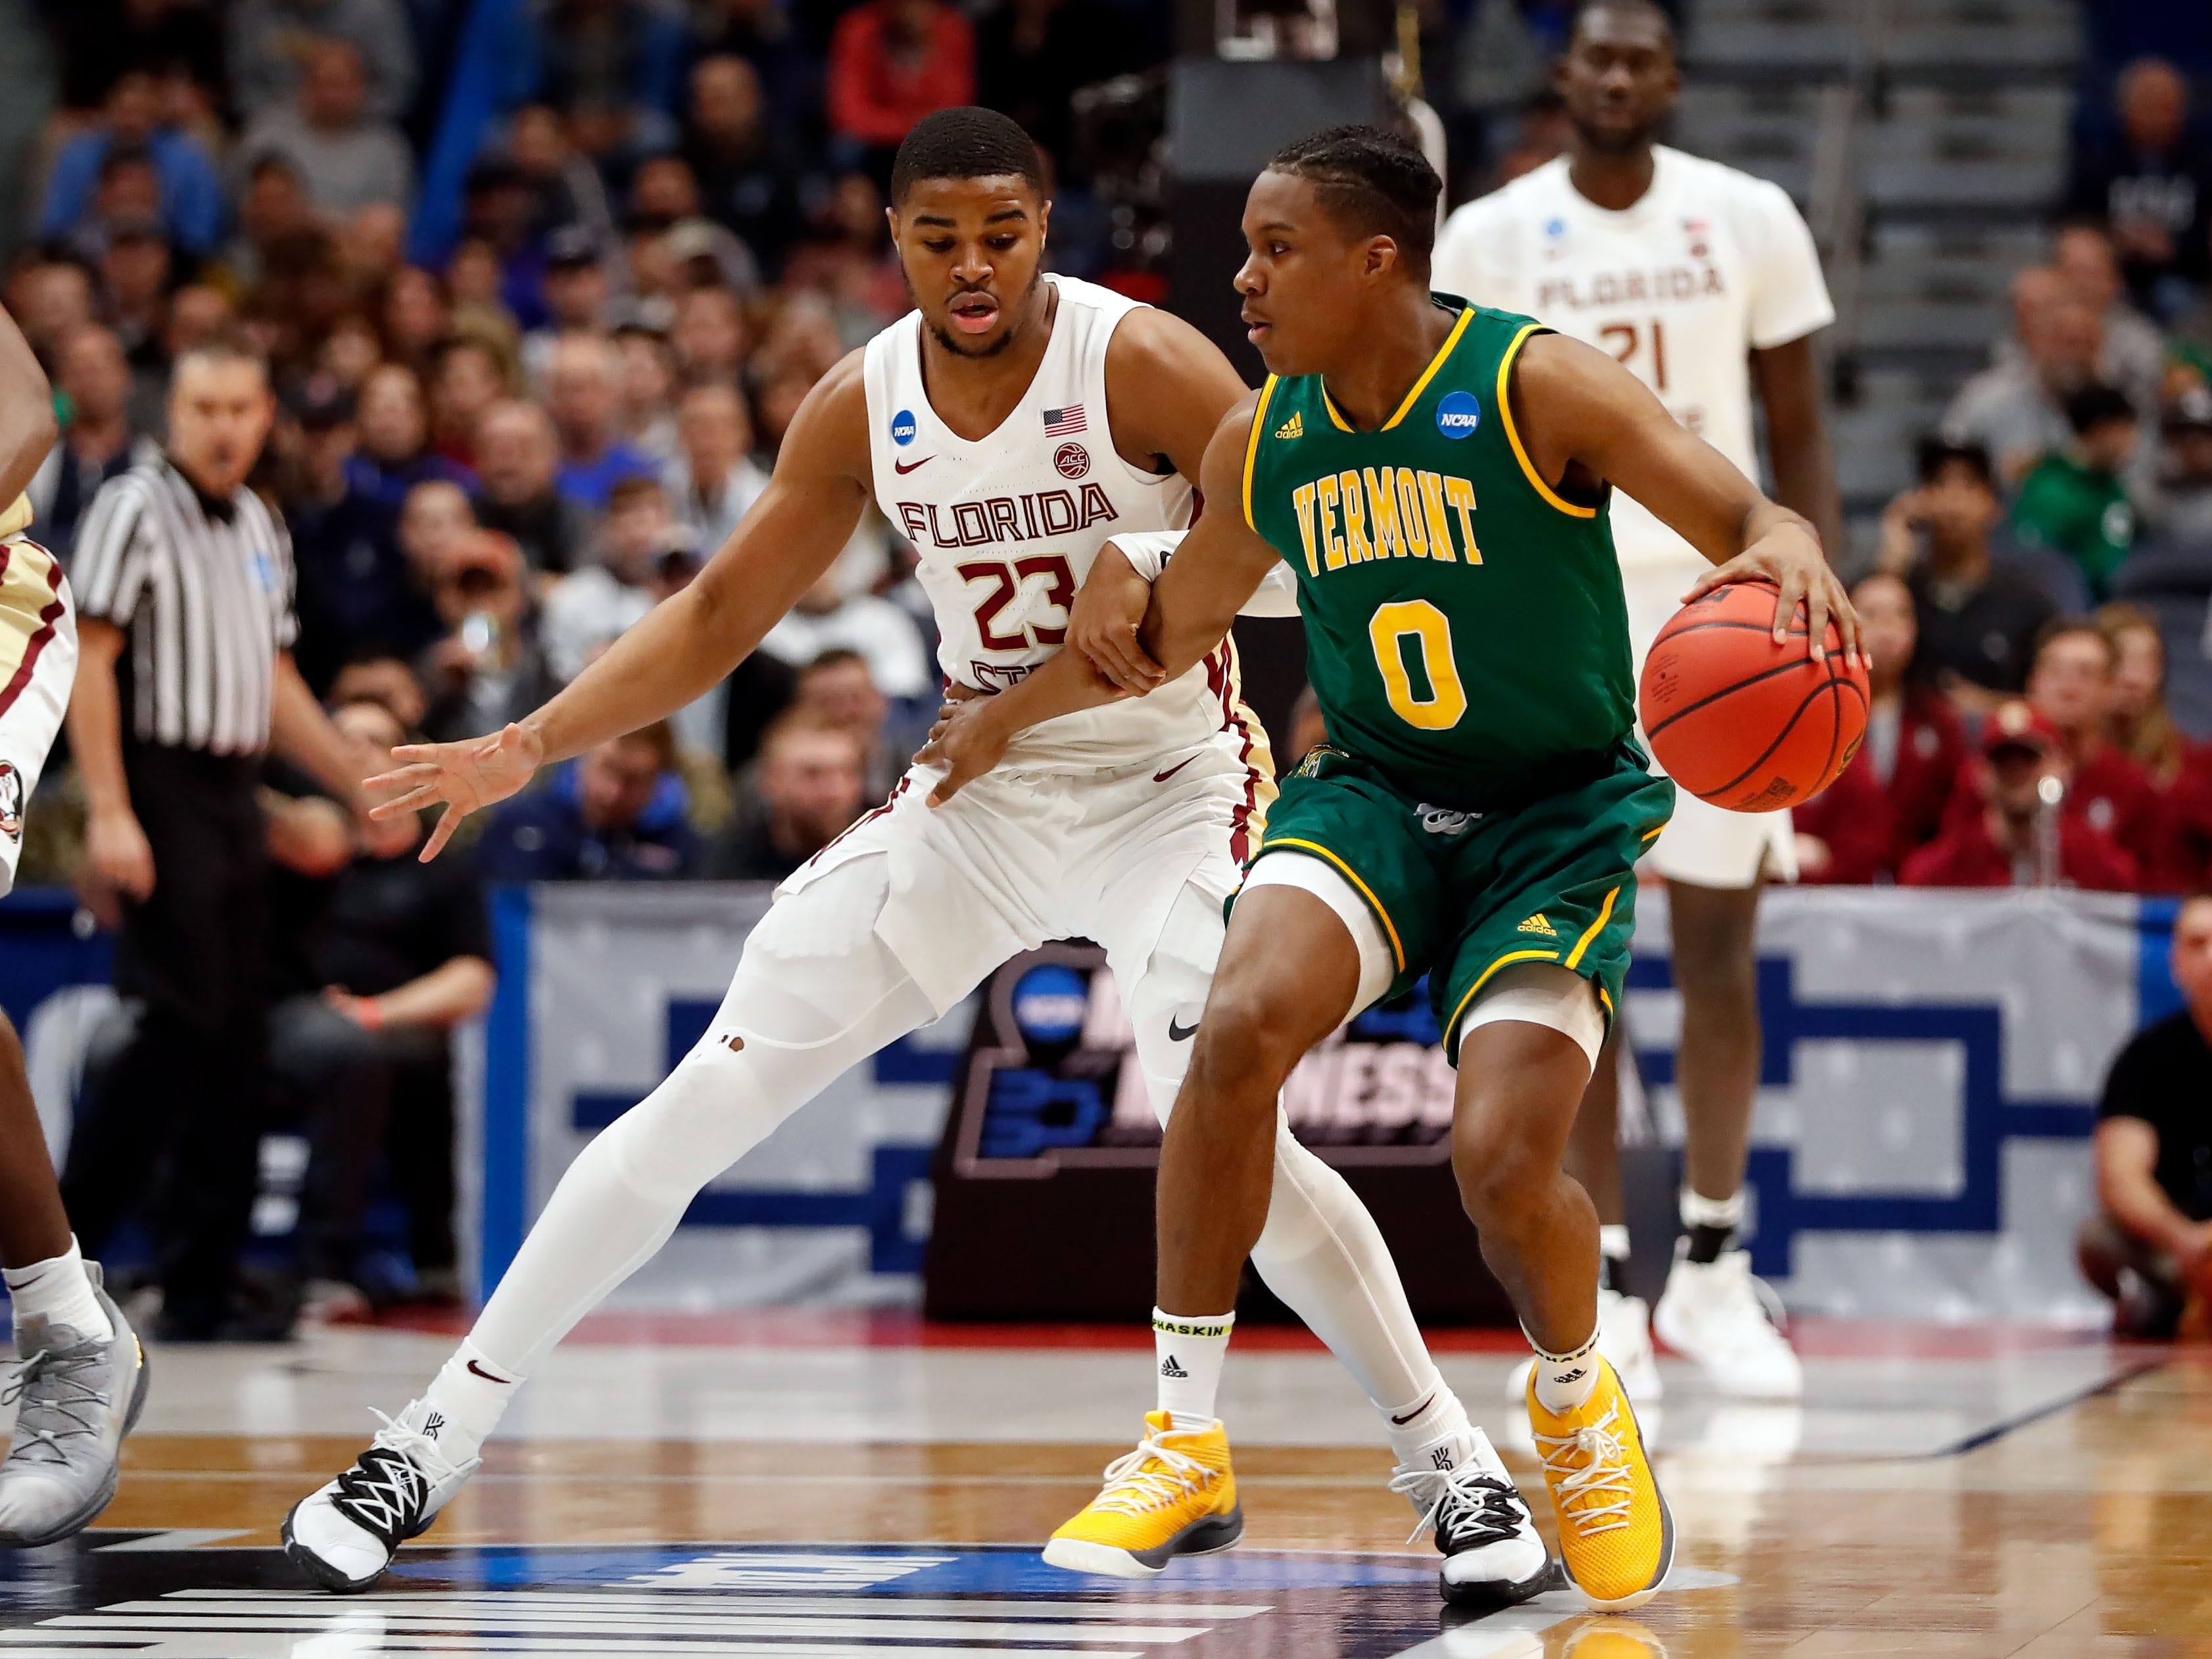 Mar 21, 2019; Hartford, CT, USA; Vermont Catamounts guard Stef Smith (0) controls the ball in front of Florida State Seminoles guard M.J. Walker (23) during the first half of a game in the first round of the 2019 NCAA Tournament at XL Center. Mandatory Credit: David Butler II-USA TODAY Sports